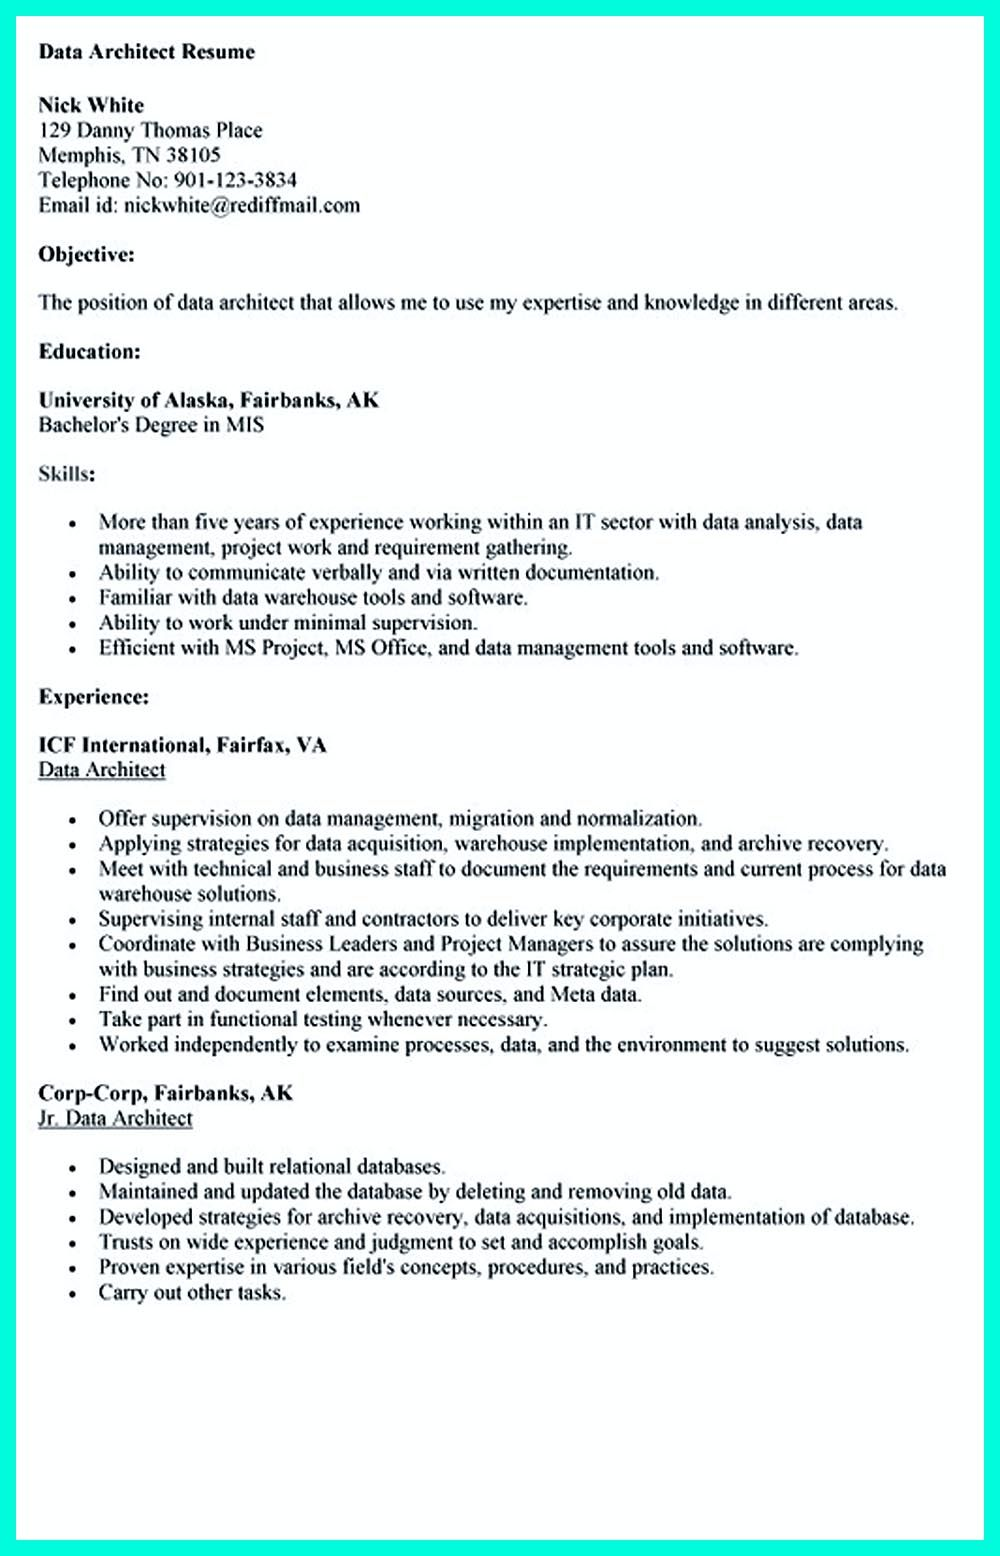 data architect resumes template data architect resumes